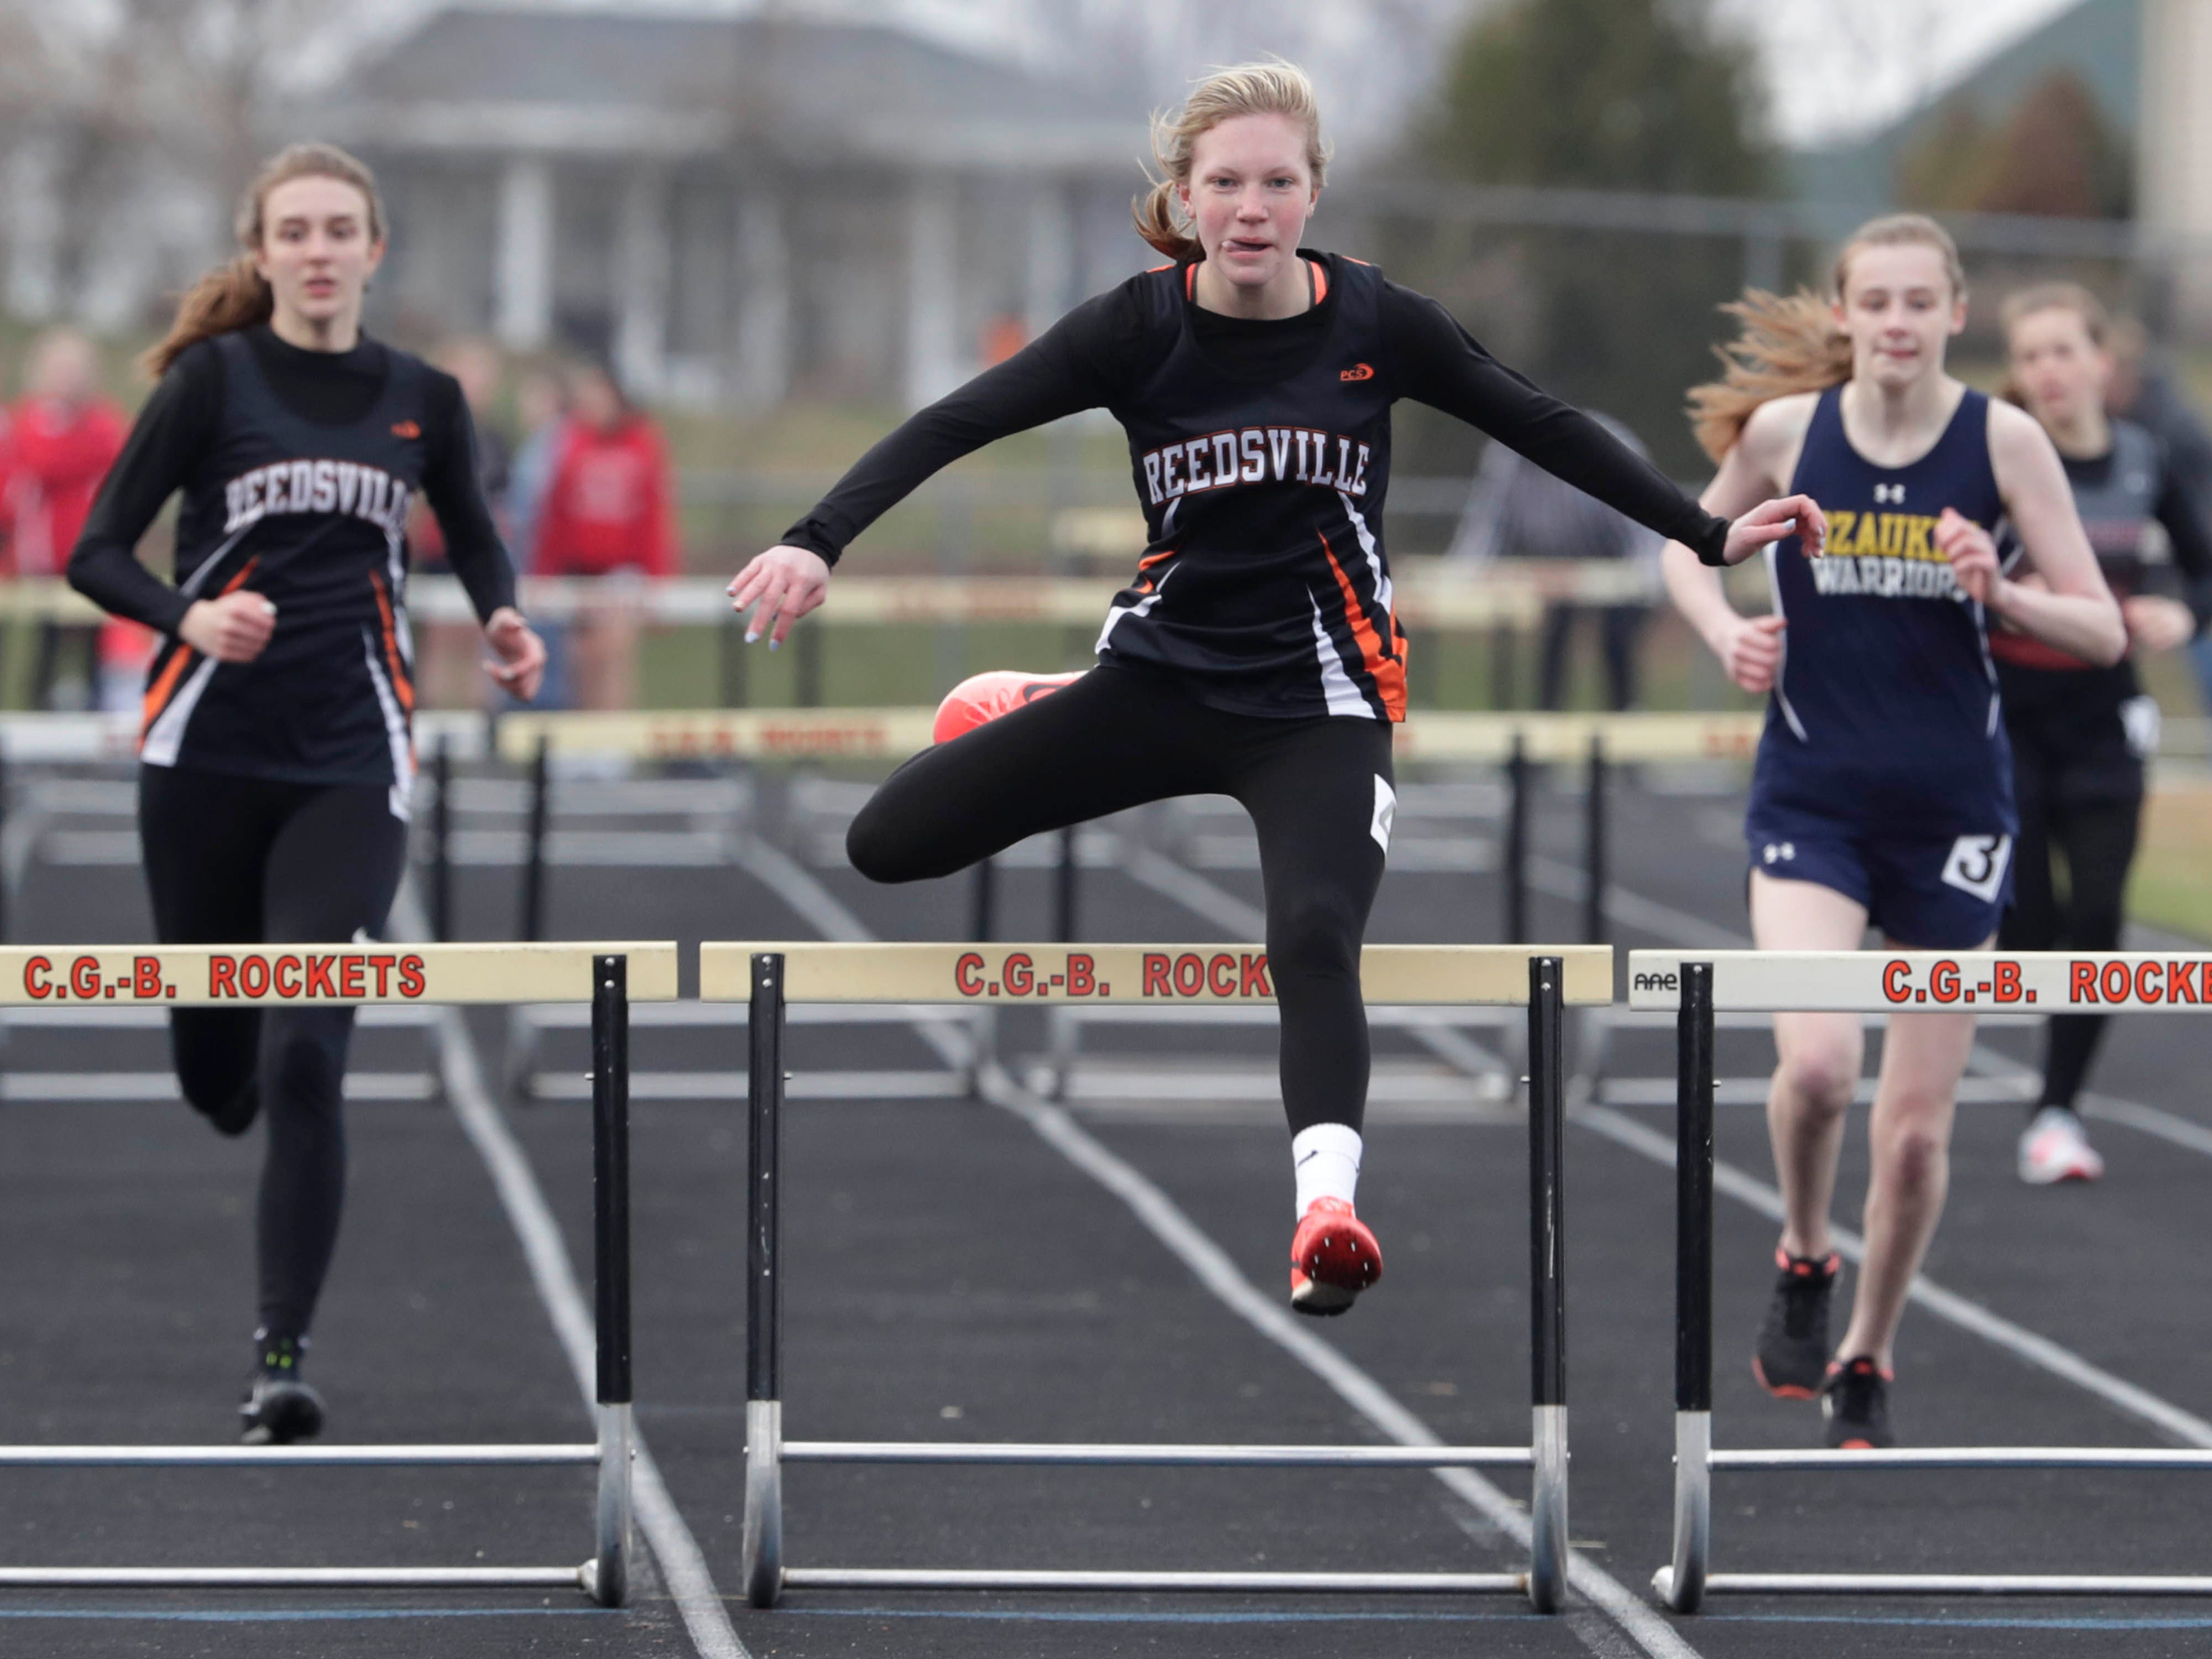 Reedsville's Katlyn Larson, center, led the way for the 300 meter hurdles, Tuesday, April 16, 2019, in Cedar Grove, Wis. At left is Rachel Peterson and at right is Ozaukee's Sarah Nehls.